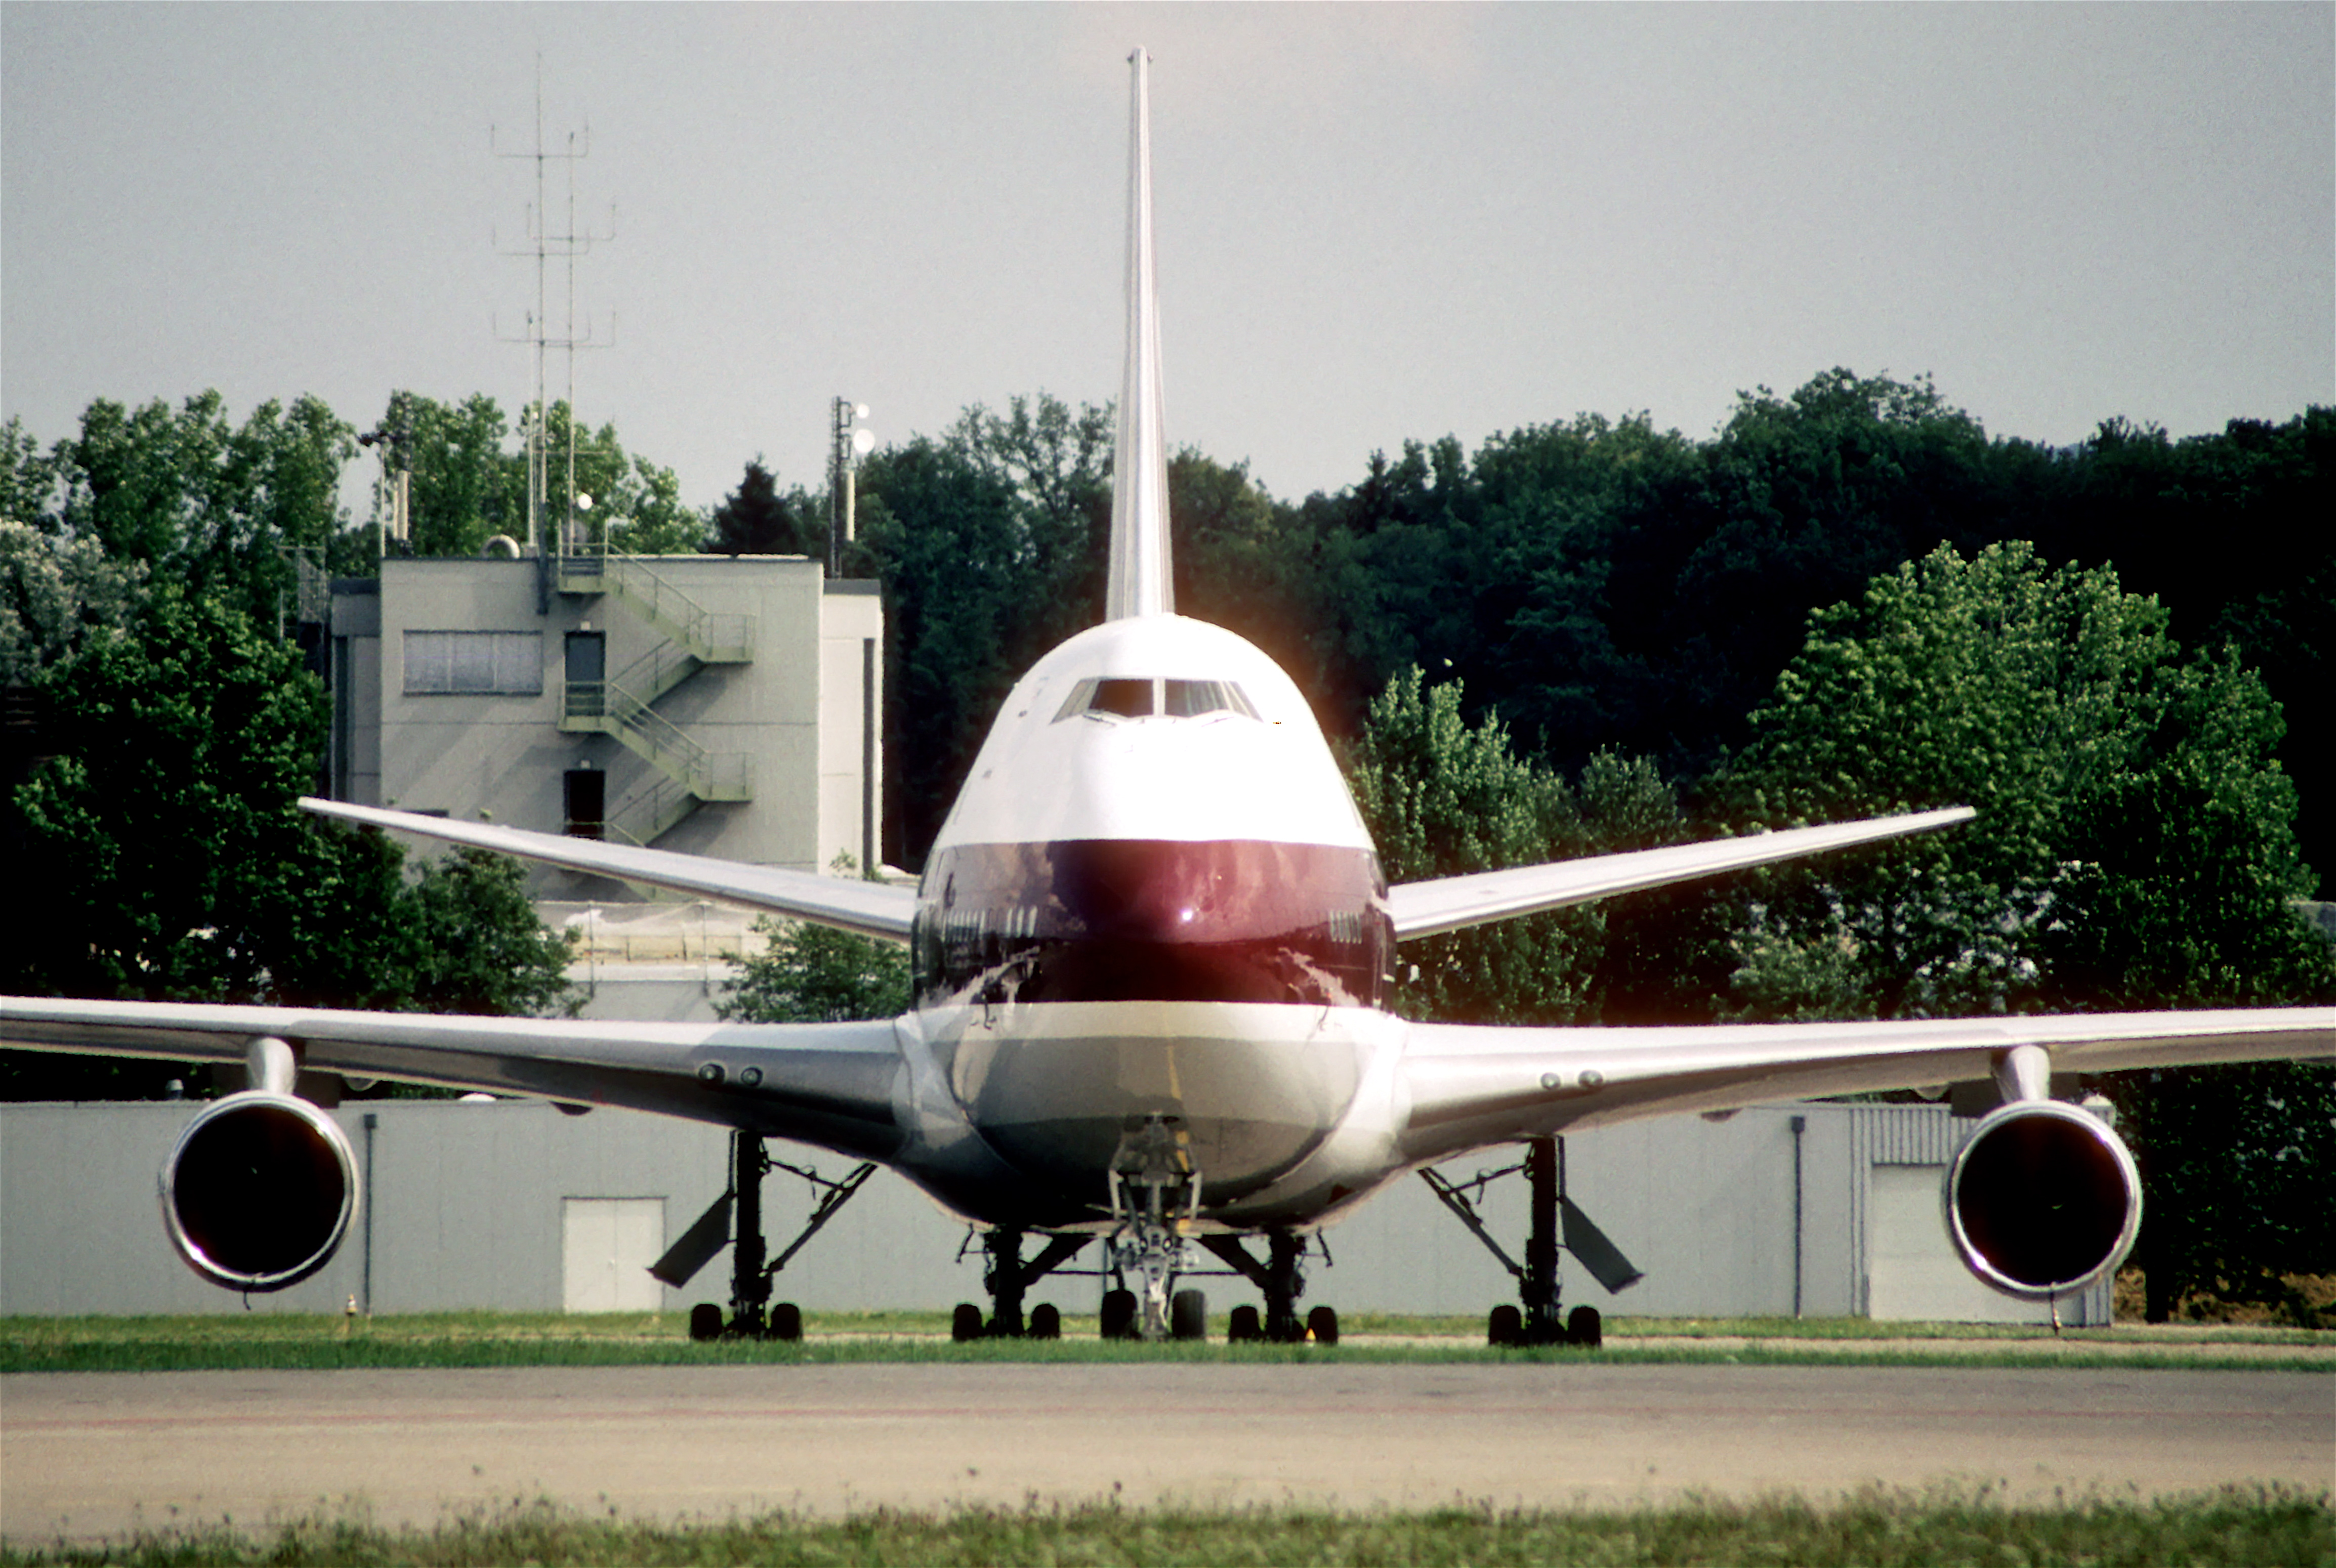 Forward view of aircraft, showing fuselage profile, two circular engines.